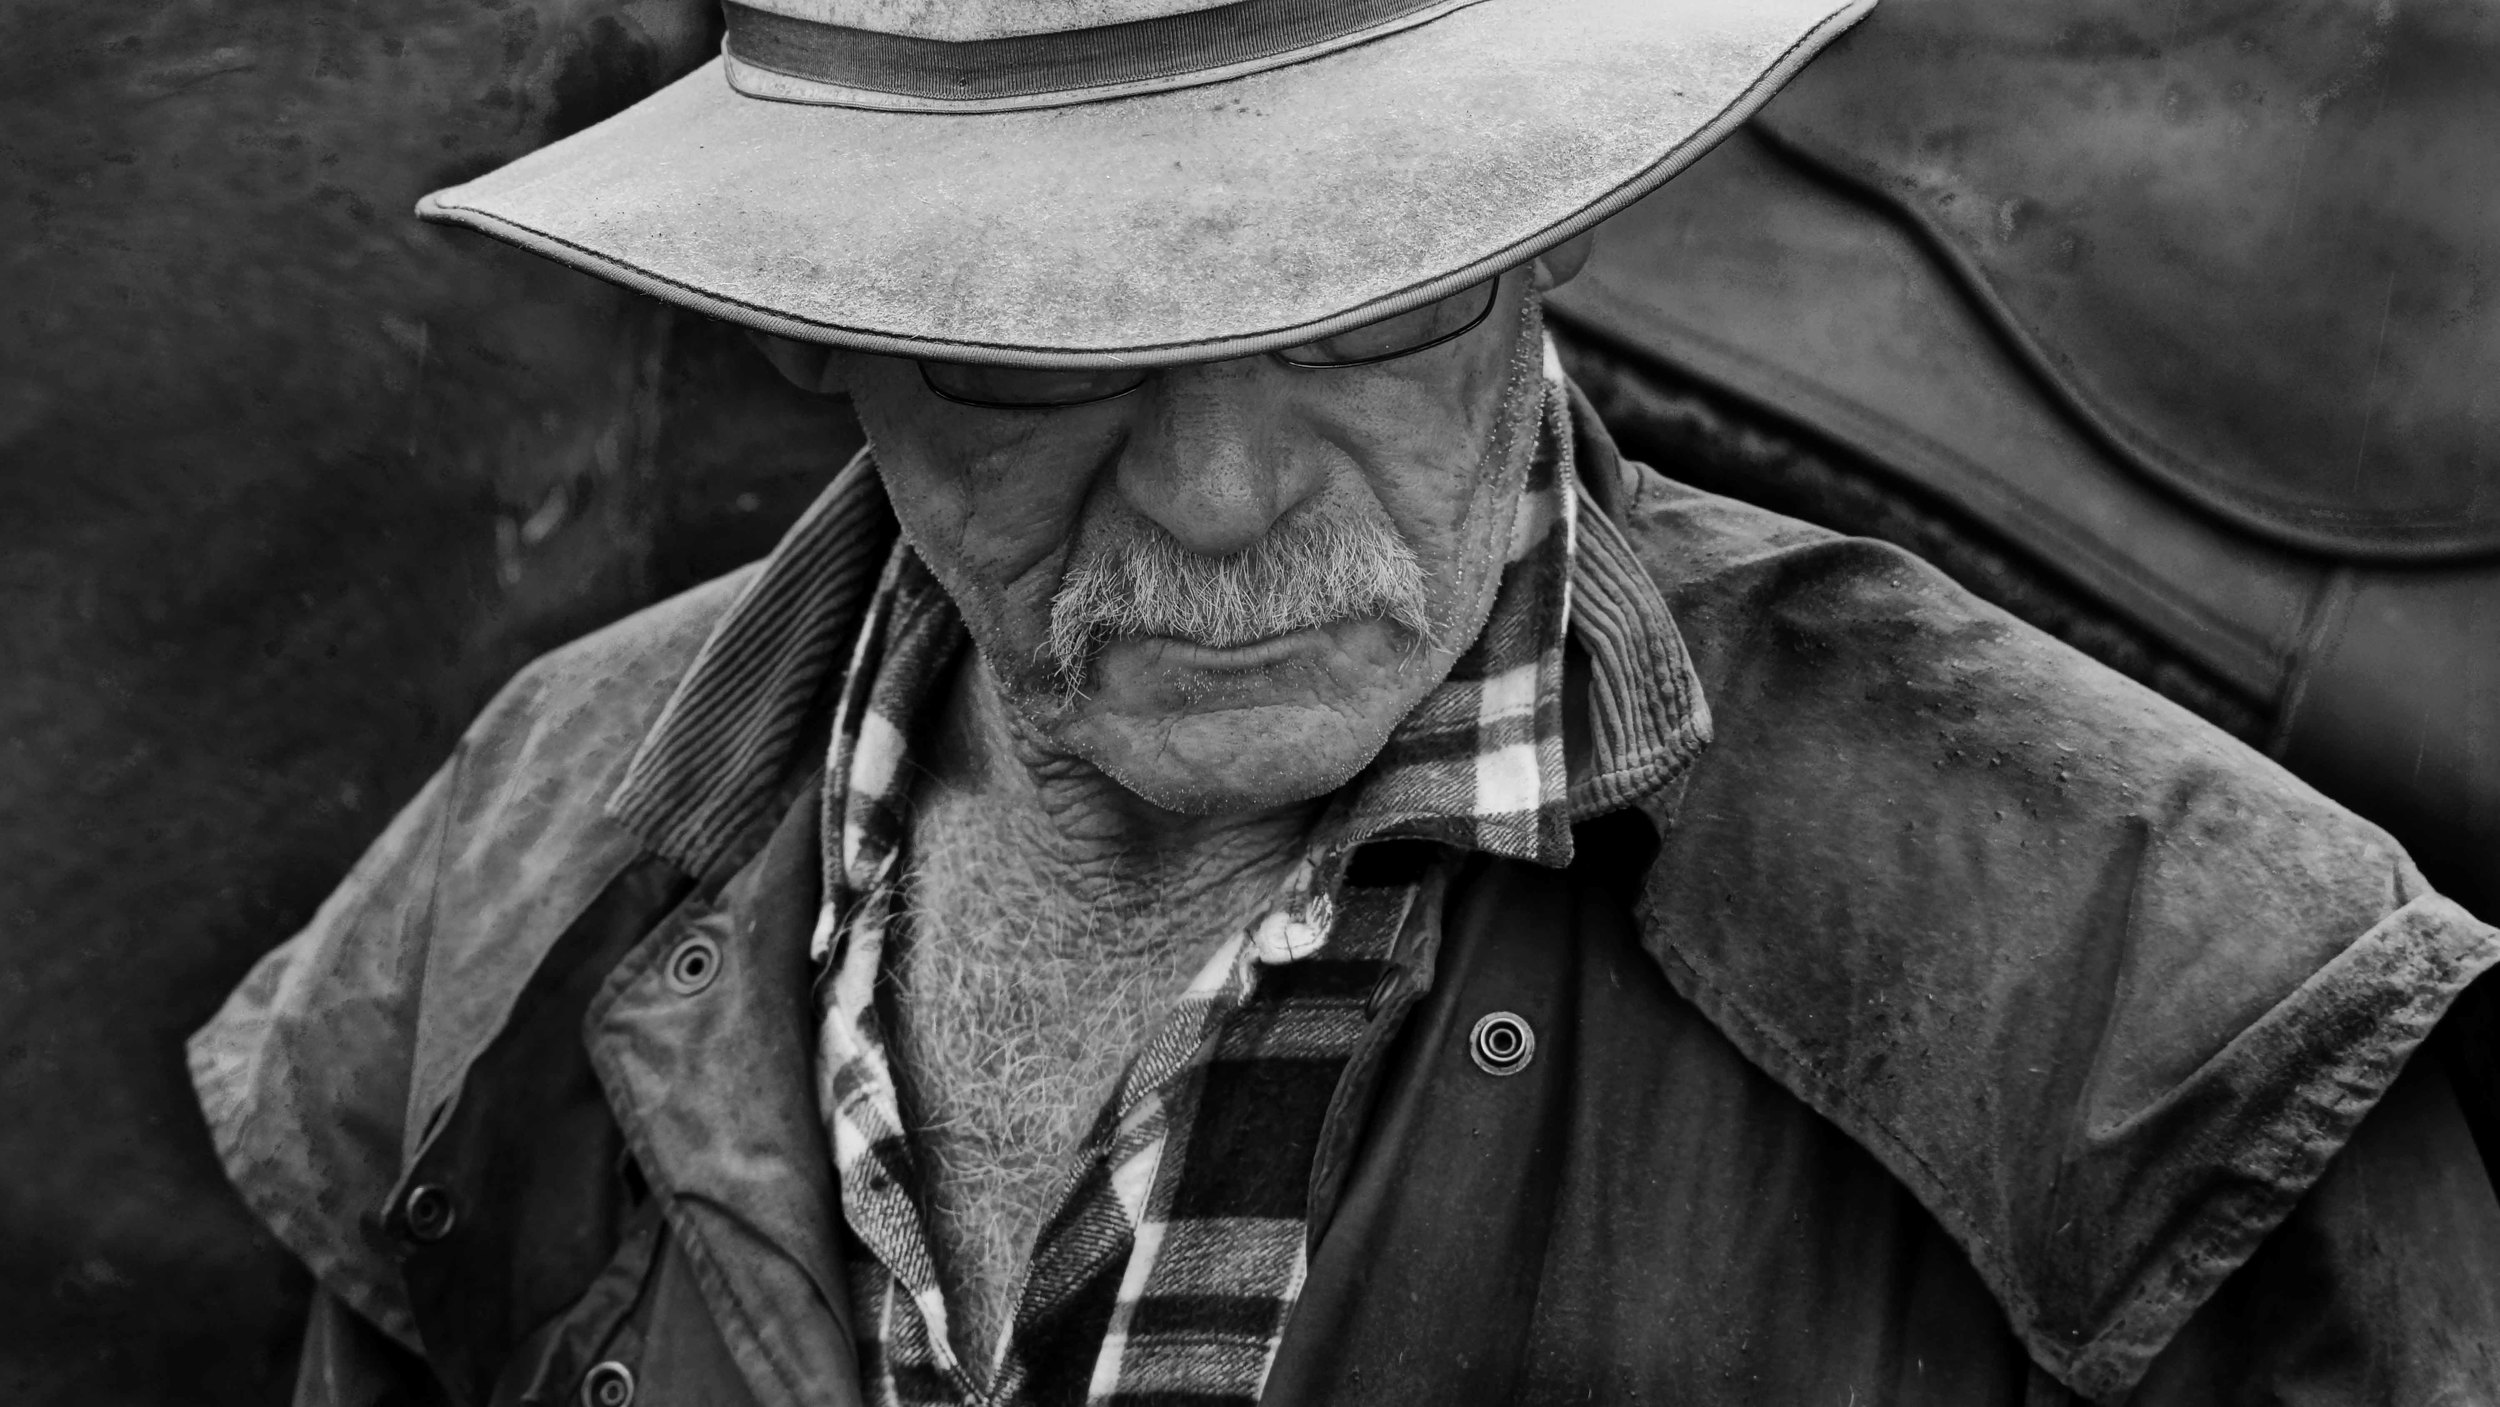 THE STOCKMAN - Corryong - AUSTRALIA   Phil Cusso, a seasoned horseman gathers some thoughts during the annual Man From Snowy River Festival  #stockman #mfsr